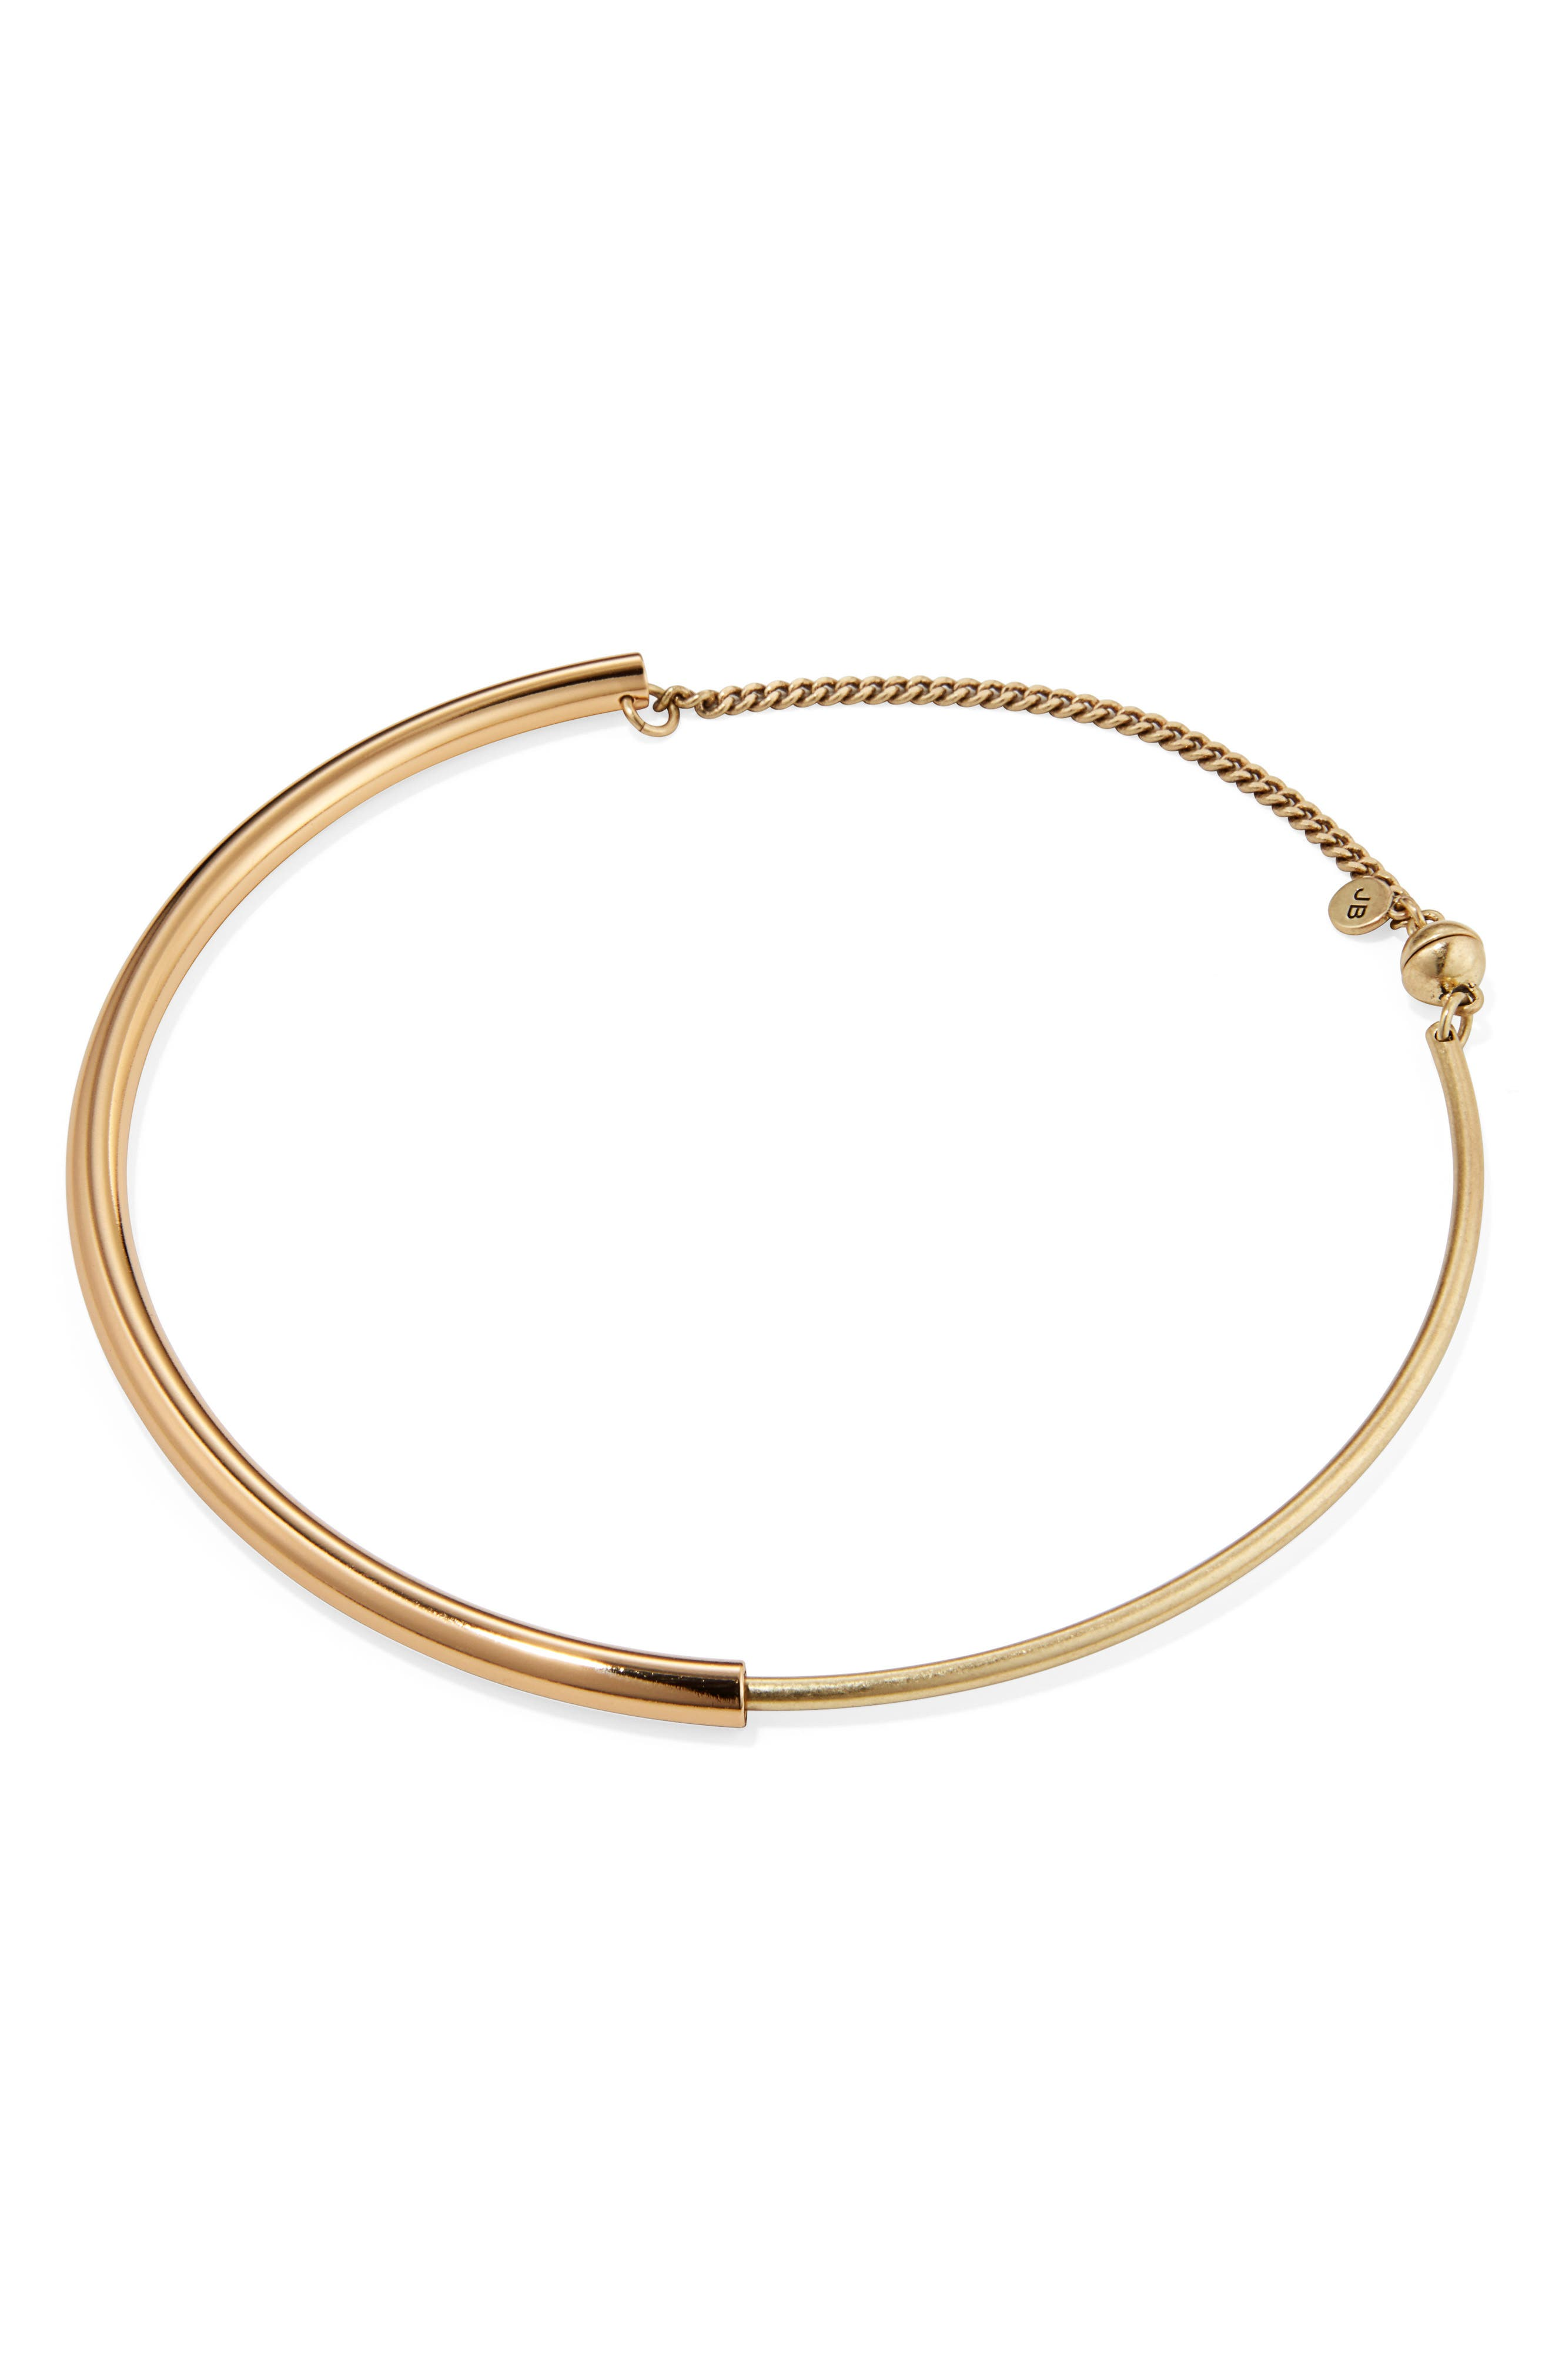 Lola Collar Necklace,                         Main,                         color, Gold